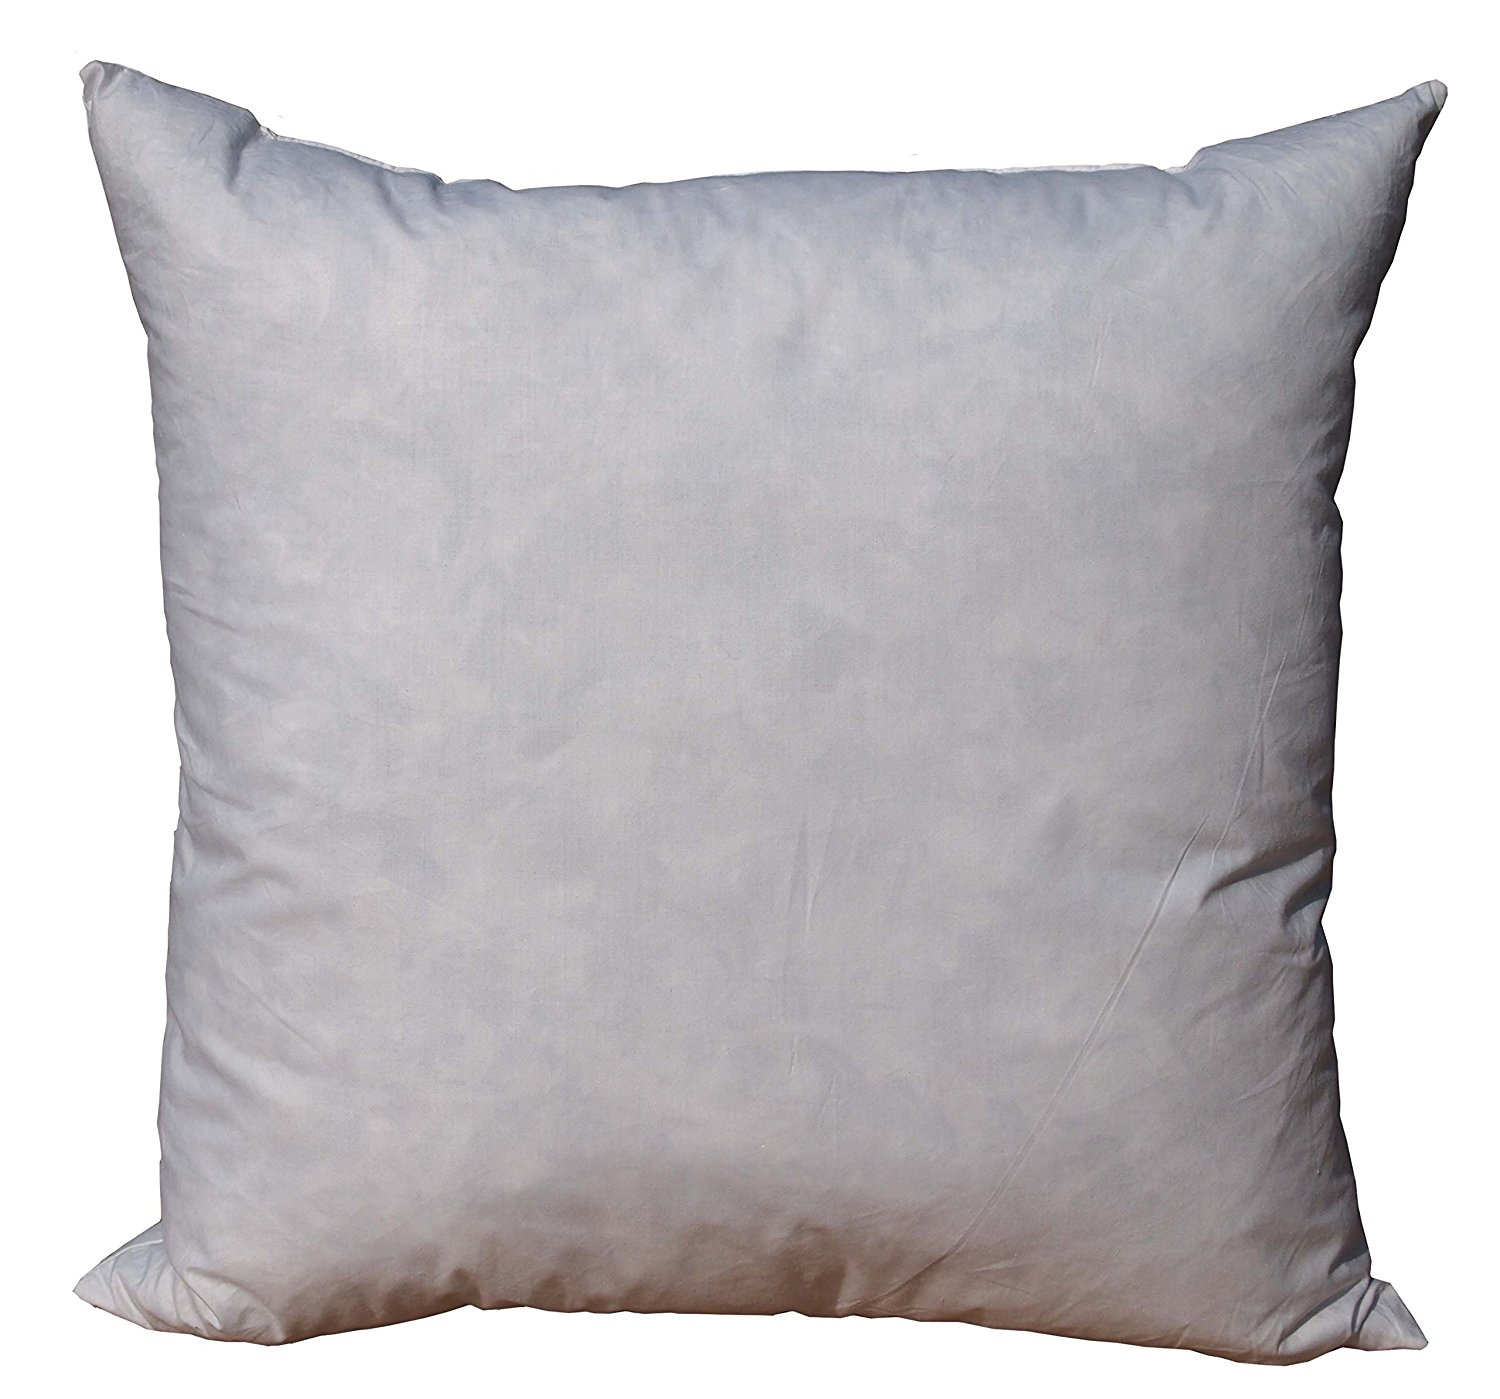 Old fashioned heavy feather pillows